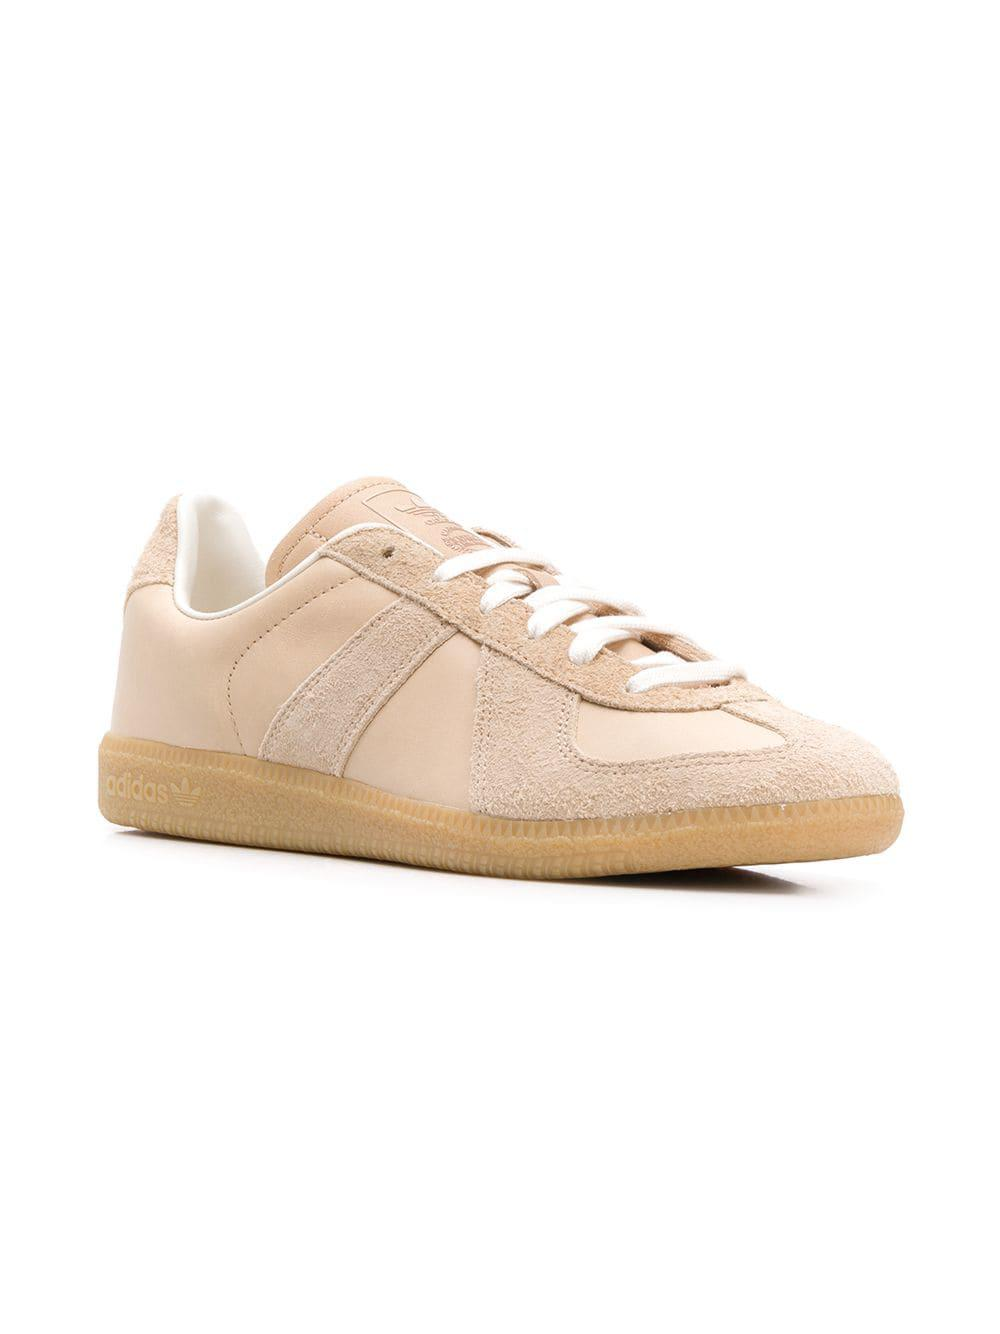 reputable site fc4b0 85f74 adidas Originals Bw Army Sneakers for Men - Lyst